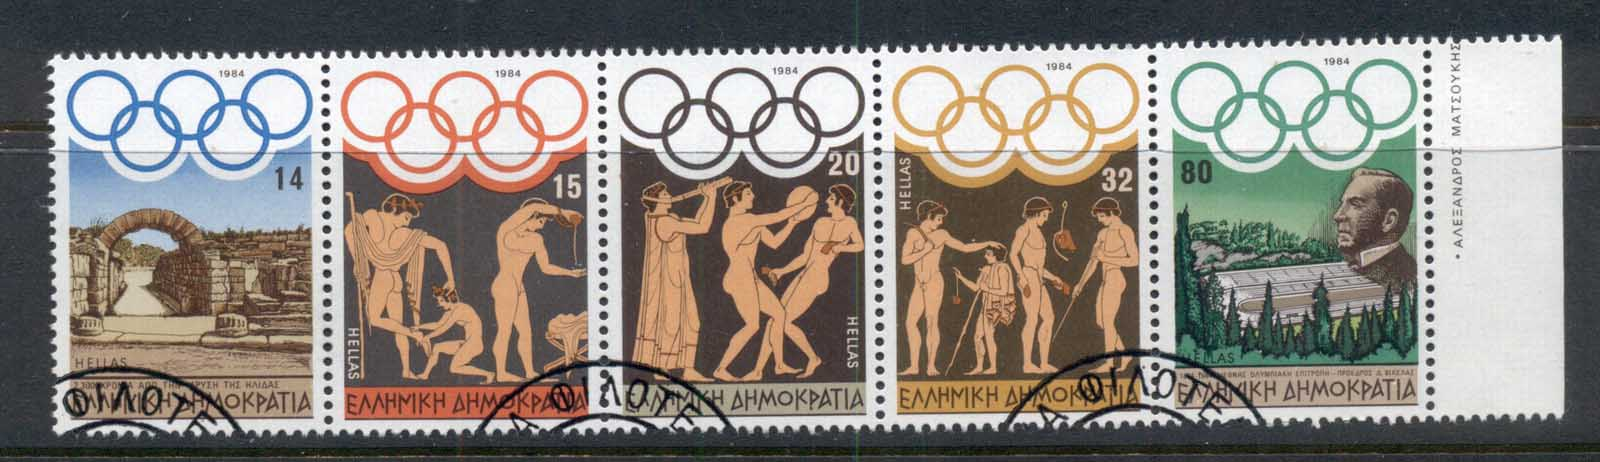 Greece 1984 Summer Olympics str5 FU